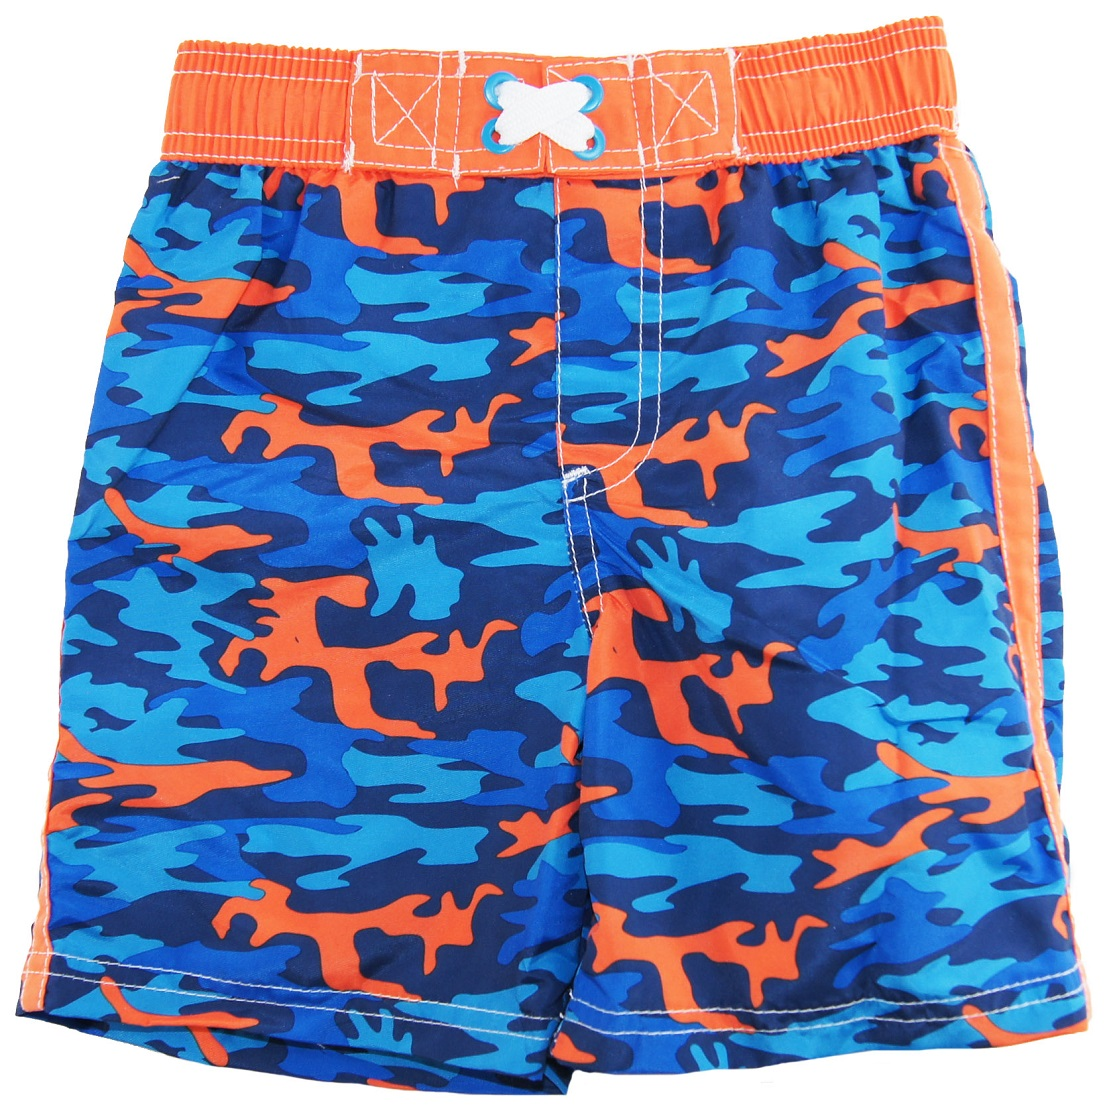 iXtreme Little Boys' Camo Army Swim Trunk Rashguard